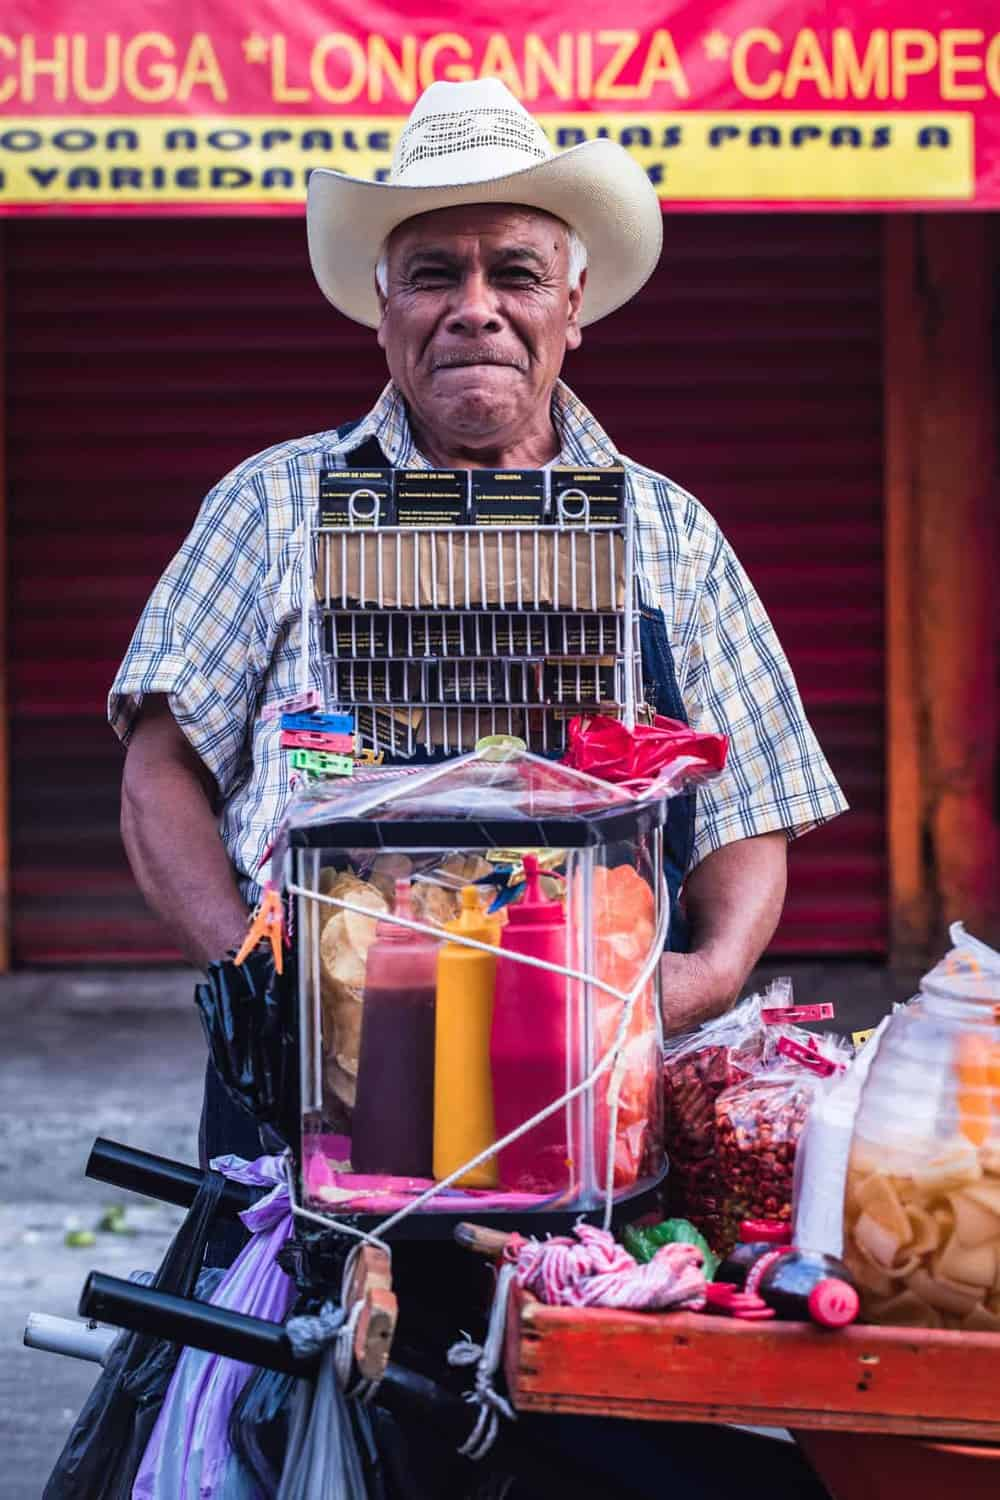 A man selling street food in Mexico City.